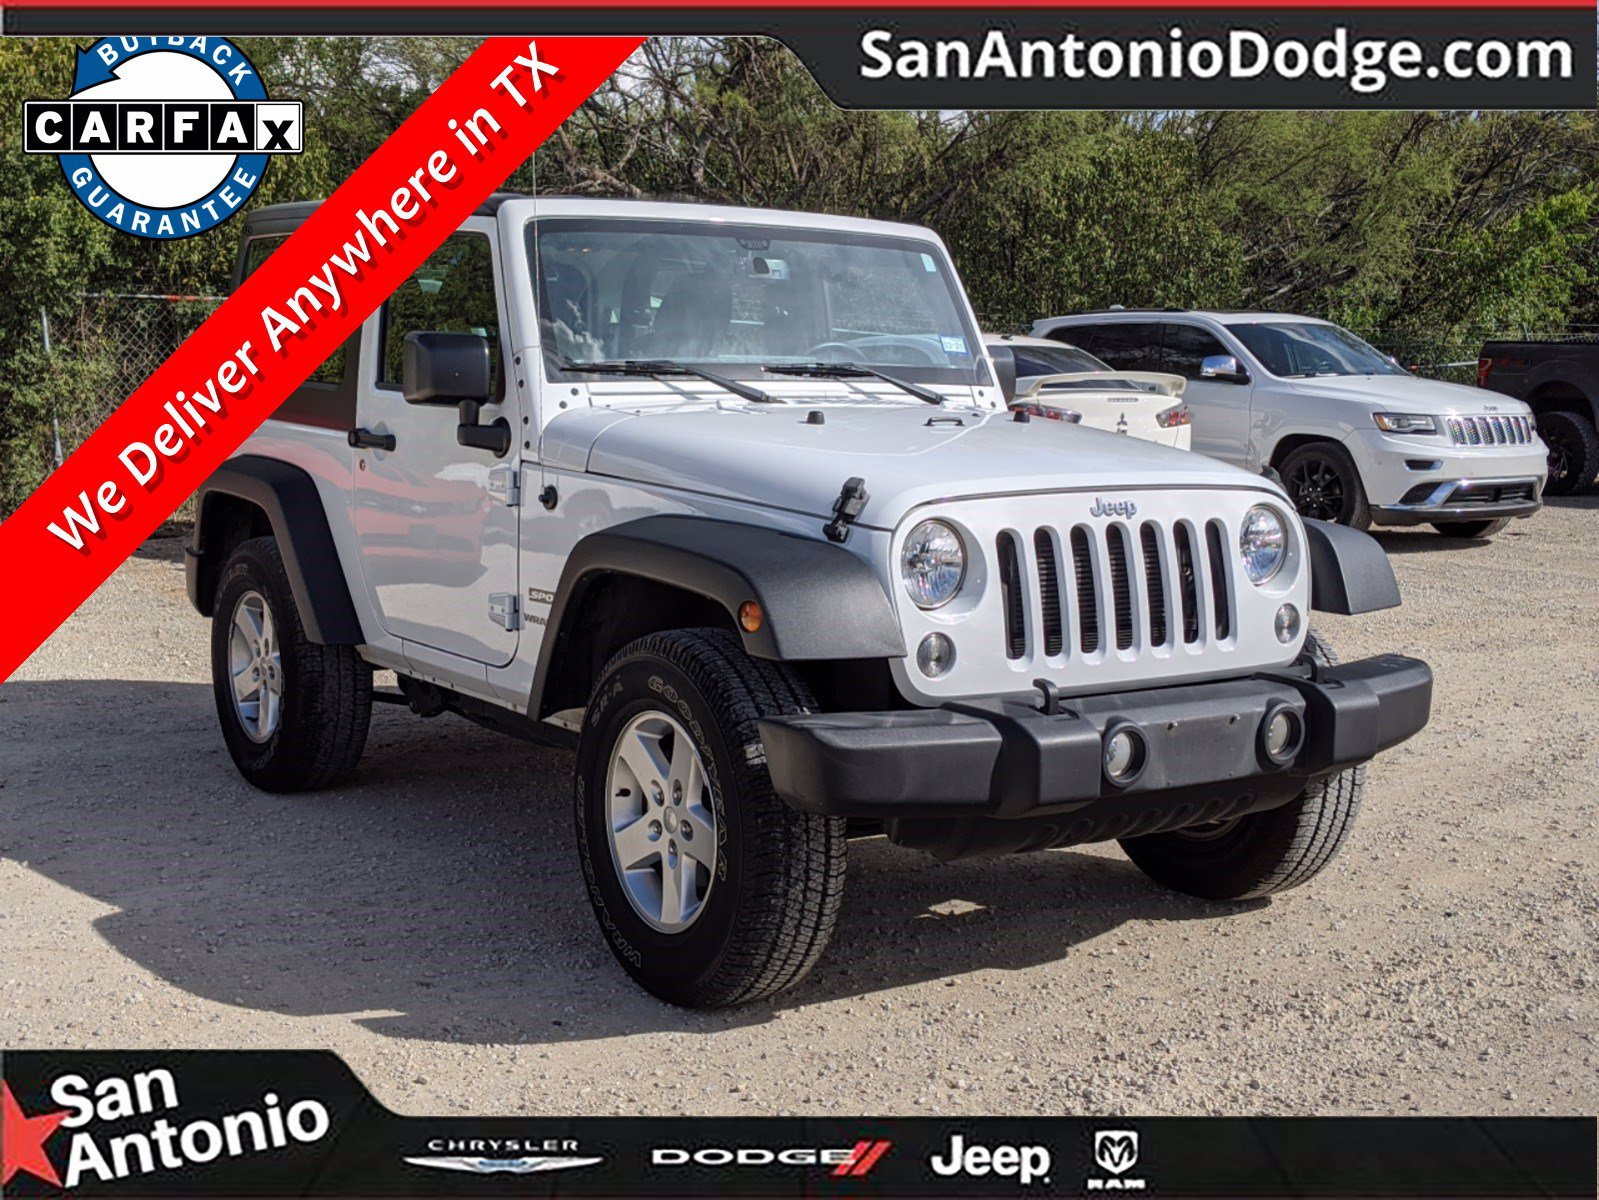 pre owned 2017 jeep wrangler sport 2d sport utility in san antonio a200043 san antonio chrysler dodge jeep ram san antonio dodge chrysler jeep ram